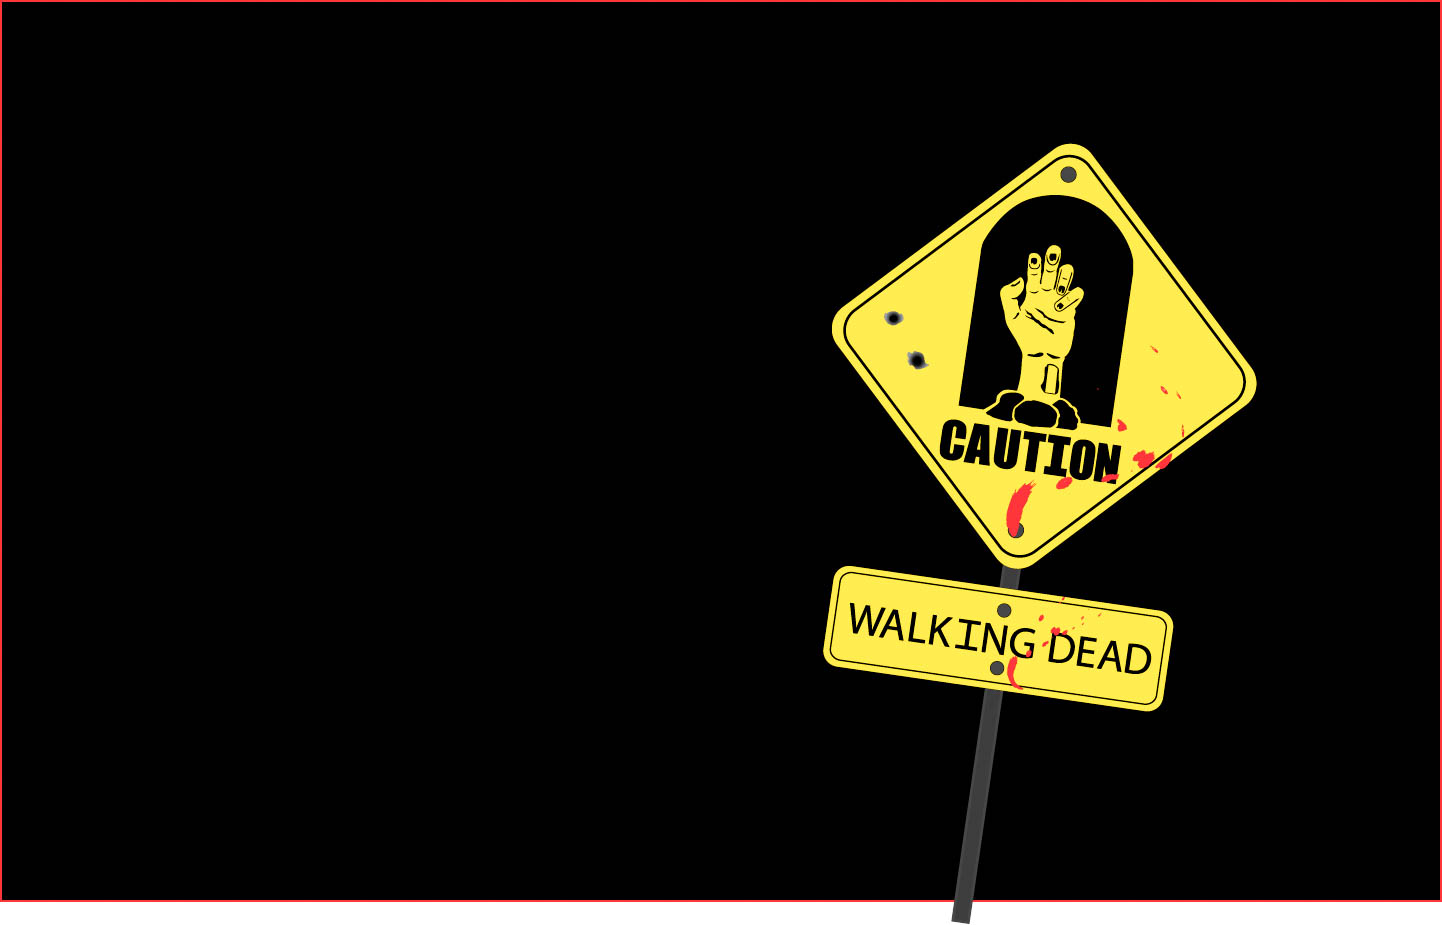 The Walking Dead Wallpapers Hd Images High Quality All Hd